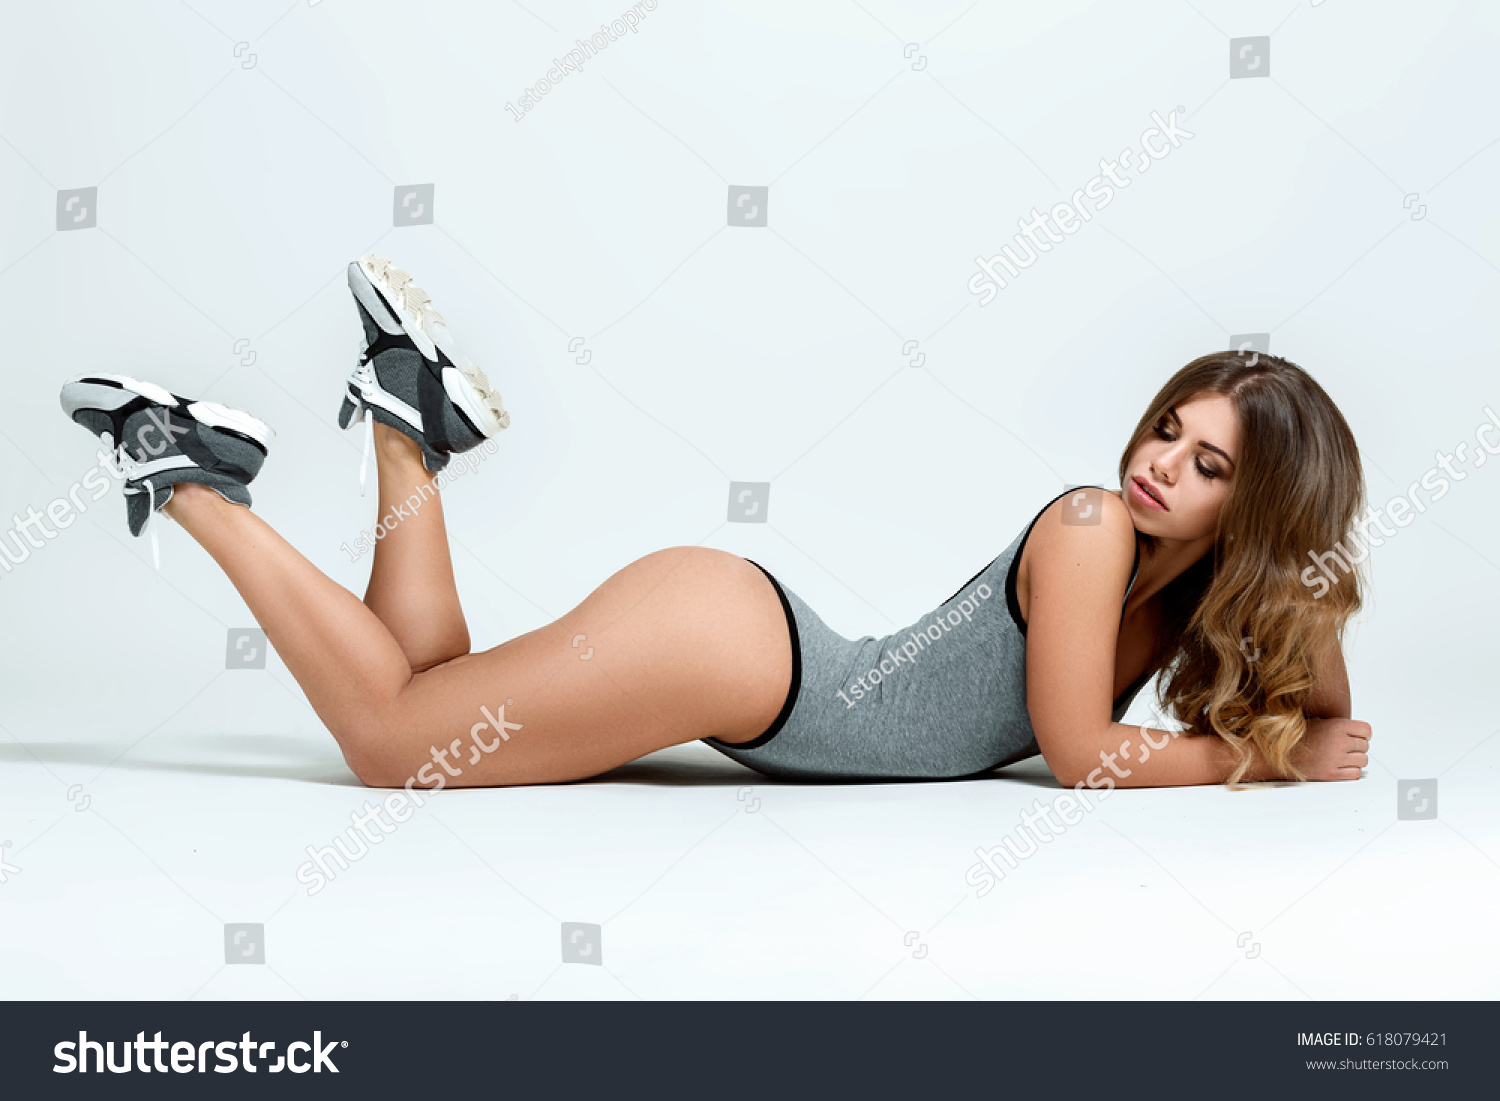 fd33019f8 Young Sexy Fit Woman Sports Outfit Stock Photo (Edit Now) 618079421 ...